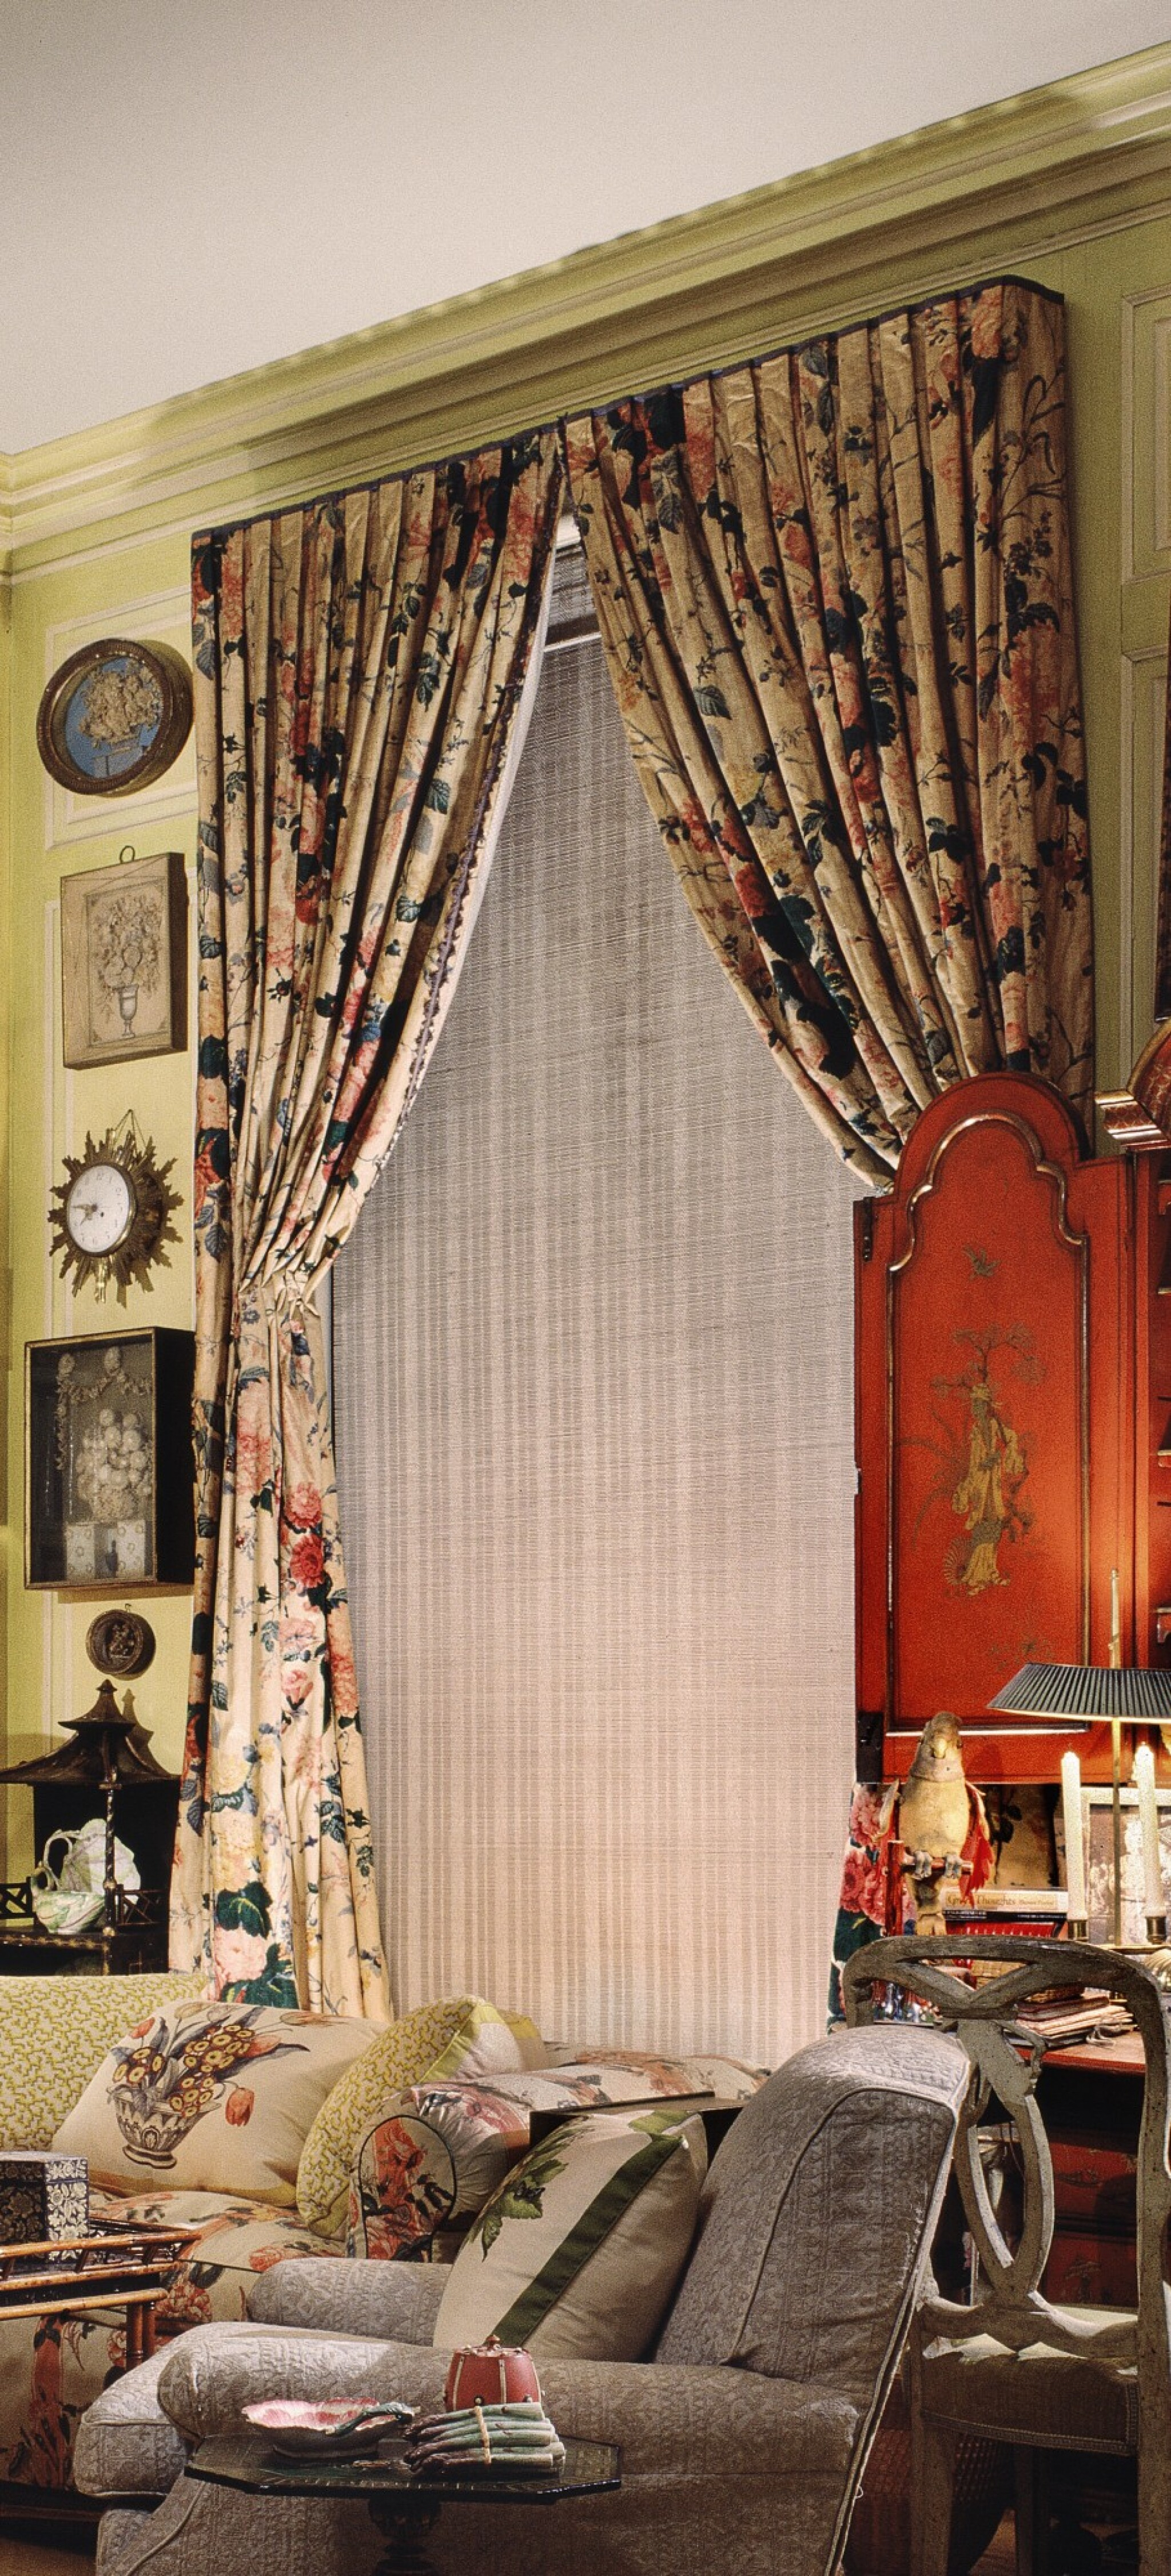 View full screen - View 1 of Lot 159. A PAIR OF CURTAINS.